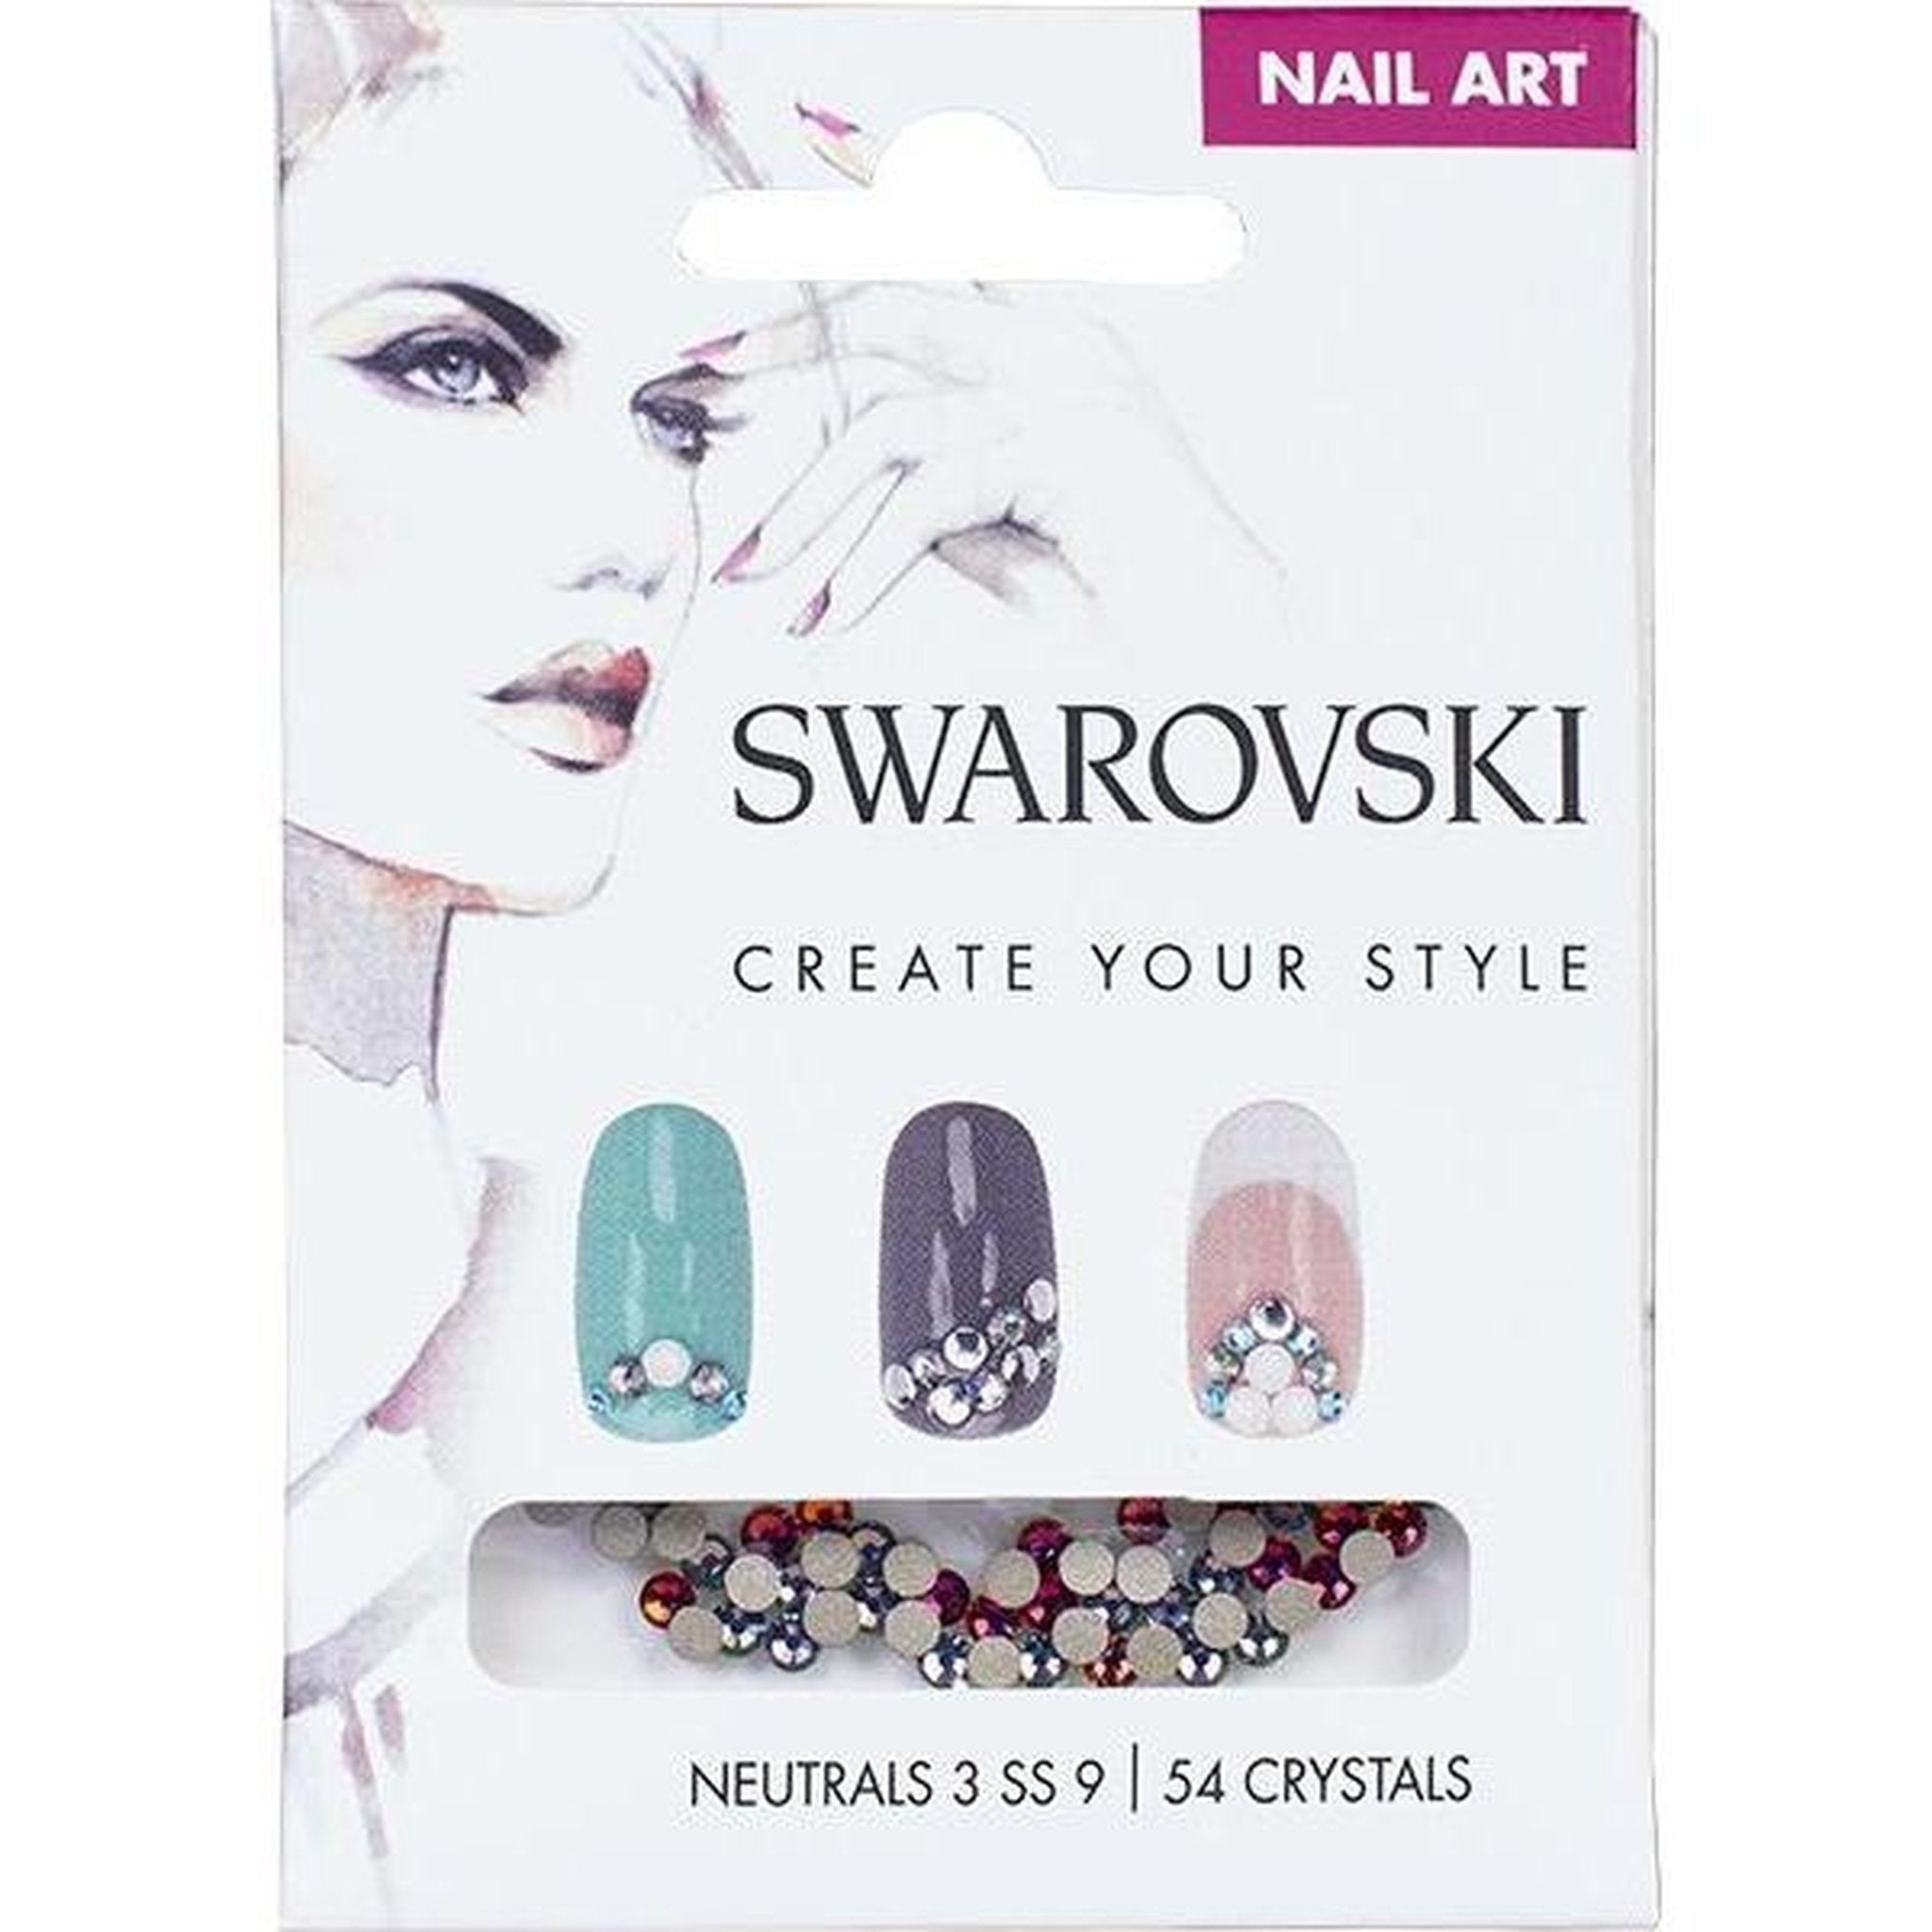 SWAROVSKI NAIL ART LOOSE CRYSTALS - NEUTRAL 3 SS9-Gel Essentialz